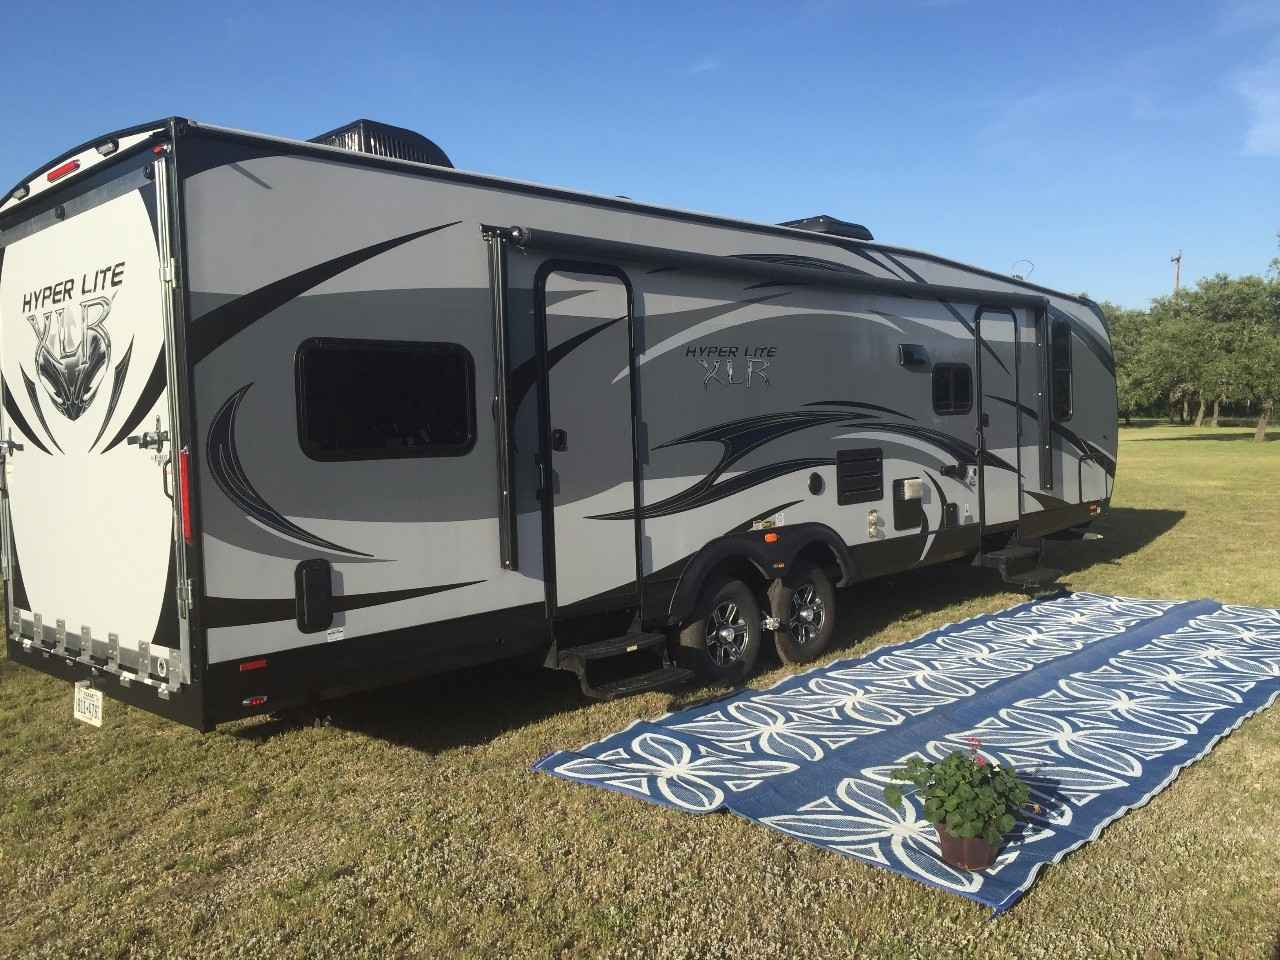 2015 Used Forest River XLR HYPERLITE 29HFS Toy Hauler in Texas TX